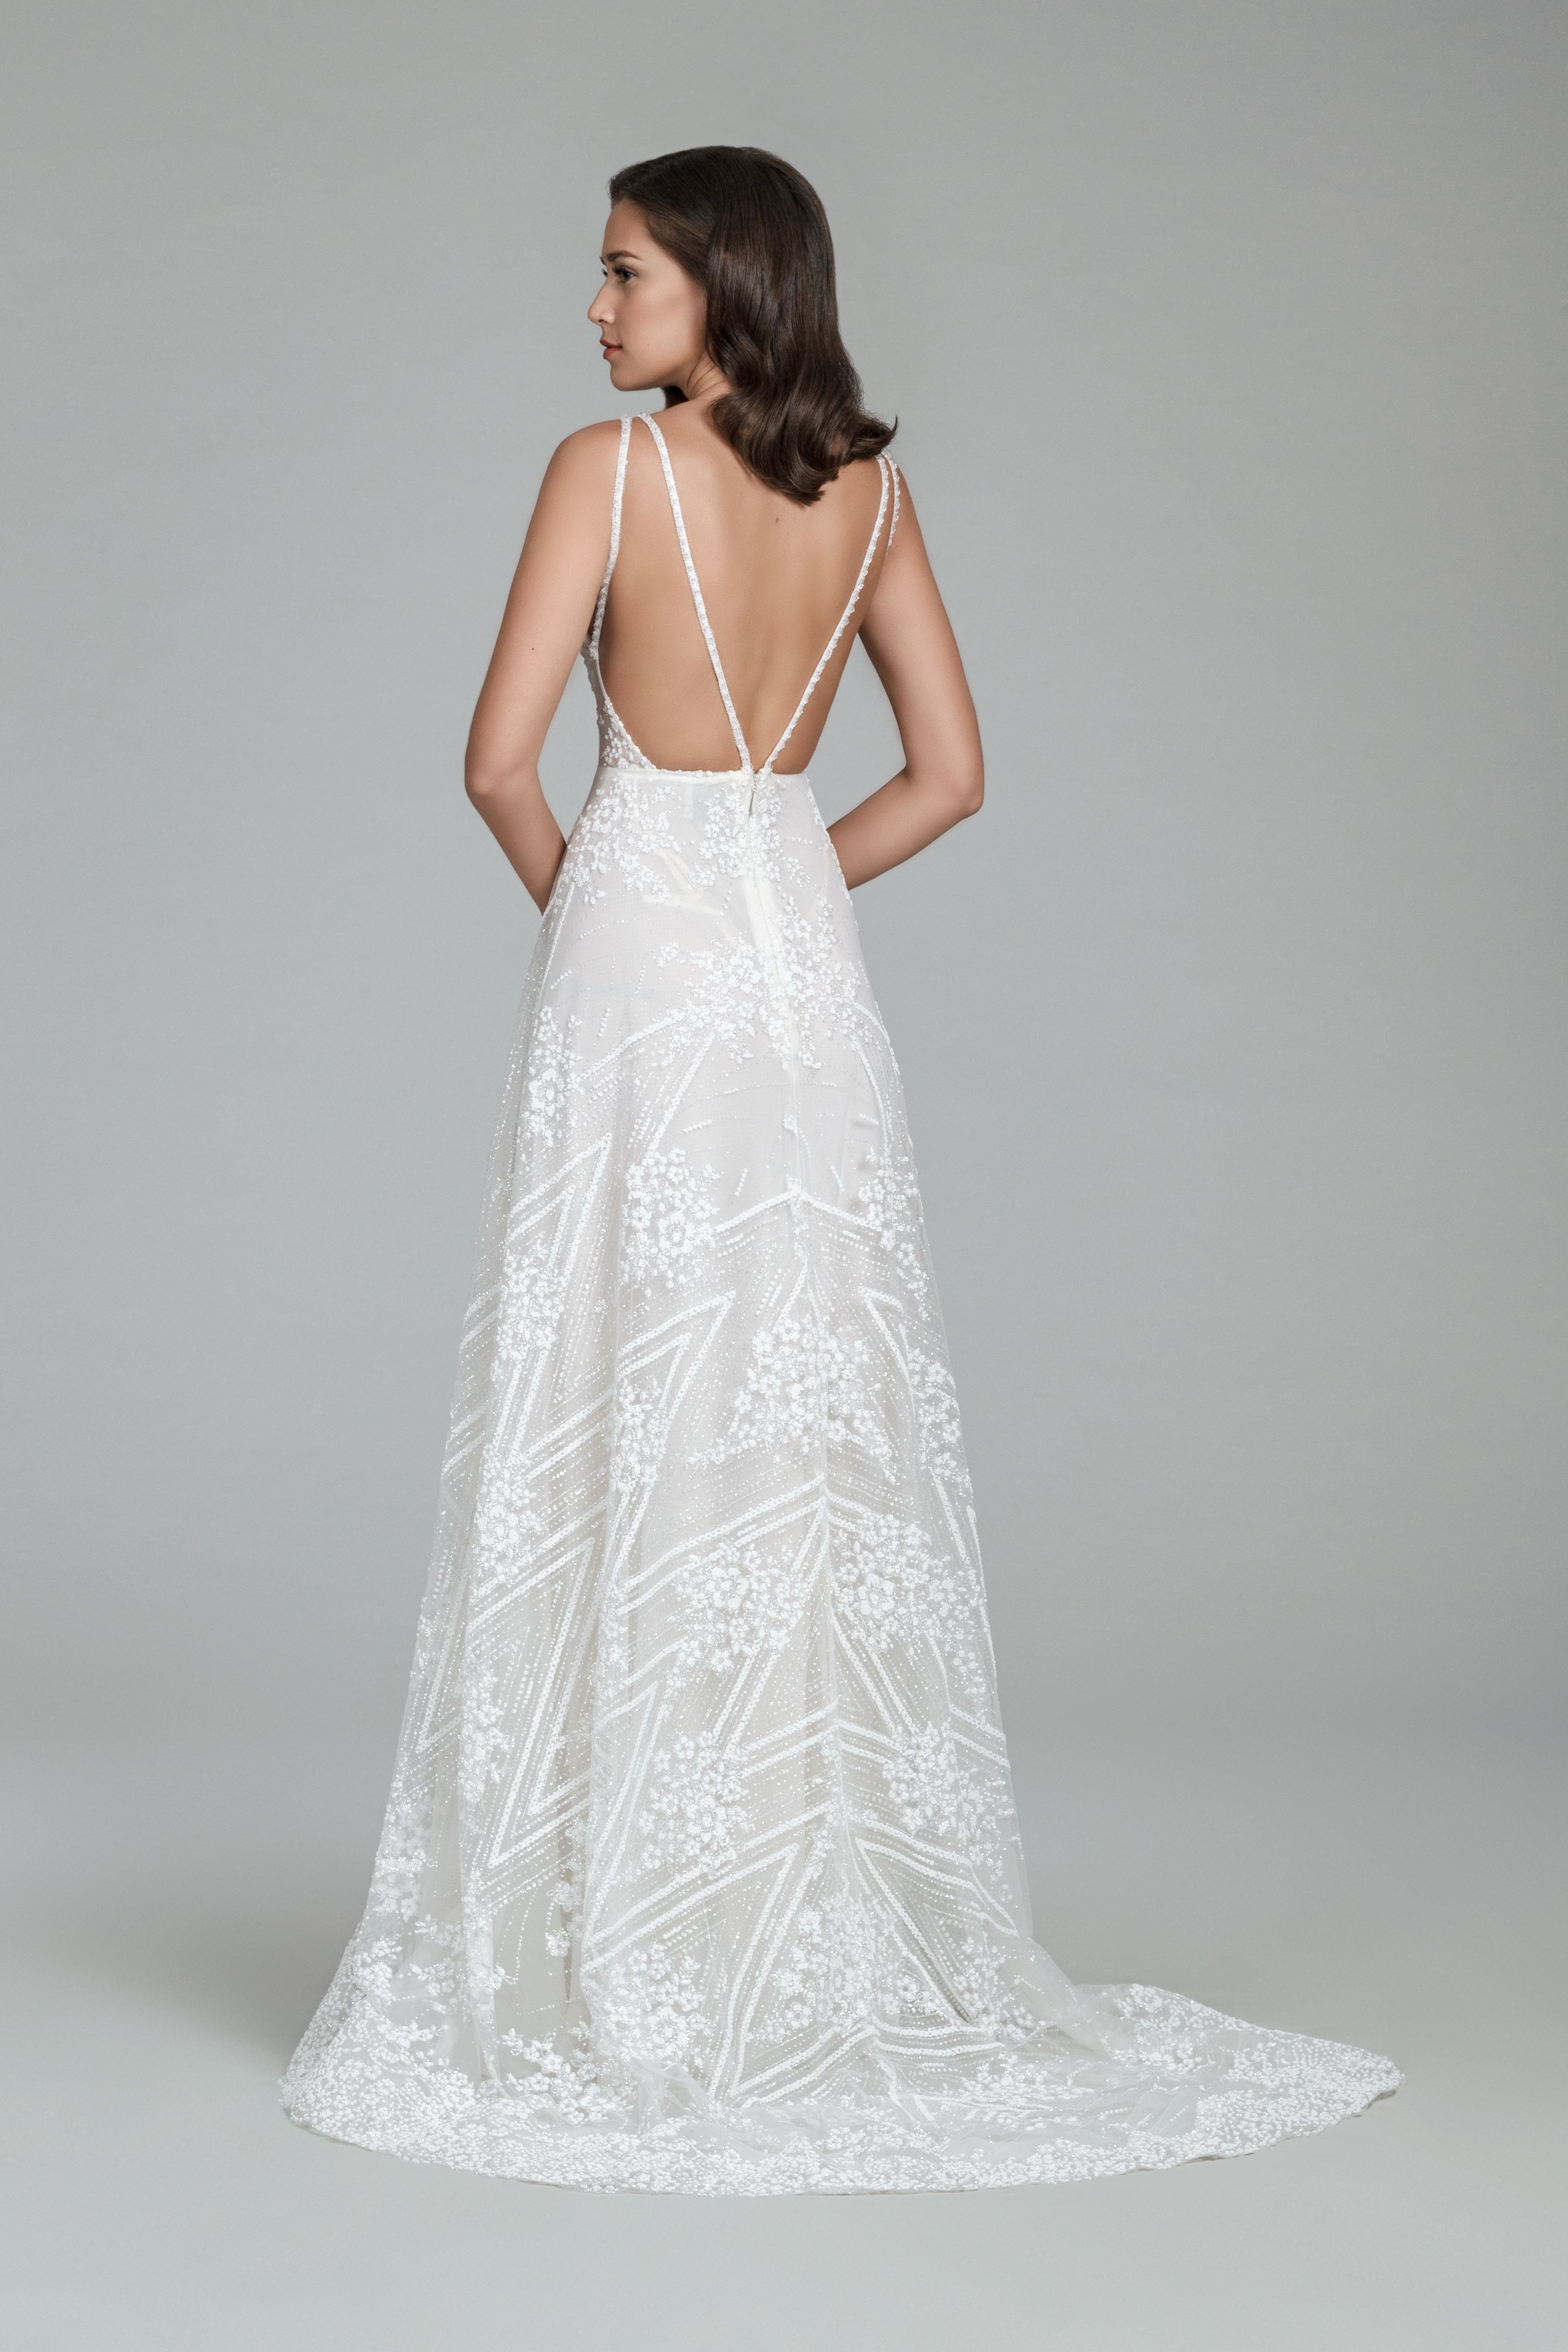 2295f194a6b5 Ivory beaded floral and chevron modified Aline gown, illusion V neckline,  open back with dual crystal straps and chapel train.